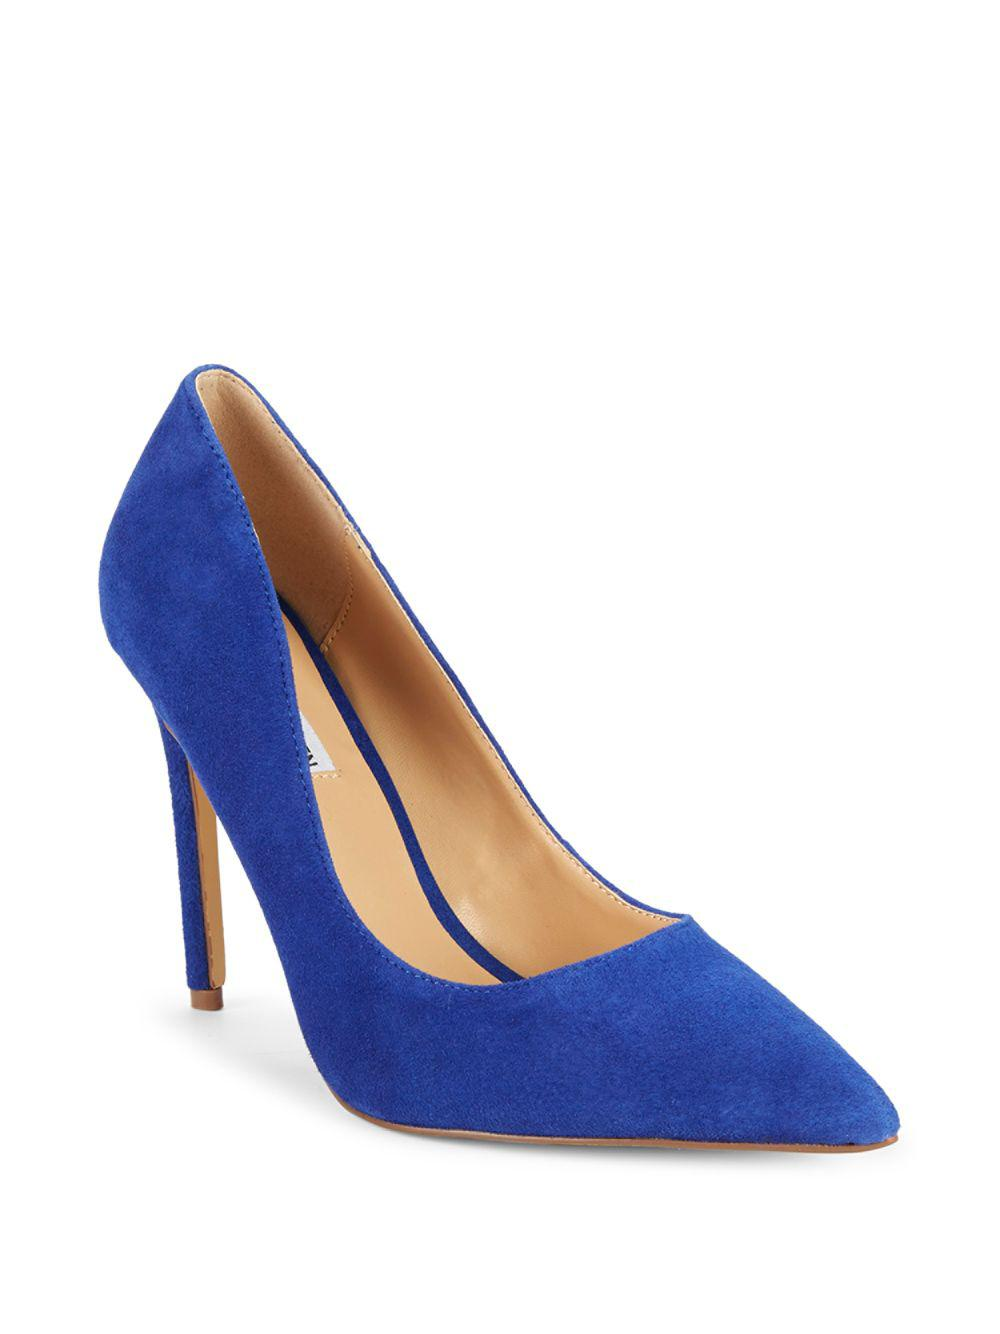 c66c33d8d88 Lyst - Steve Madden Olena Point Toe Pumps in Blue